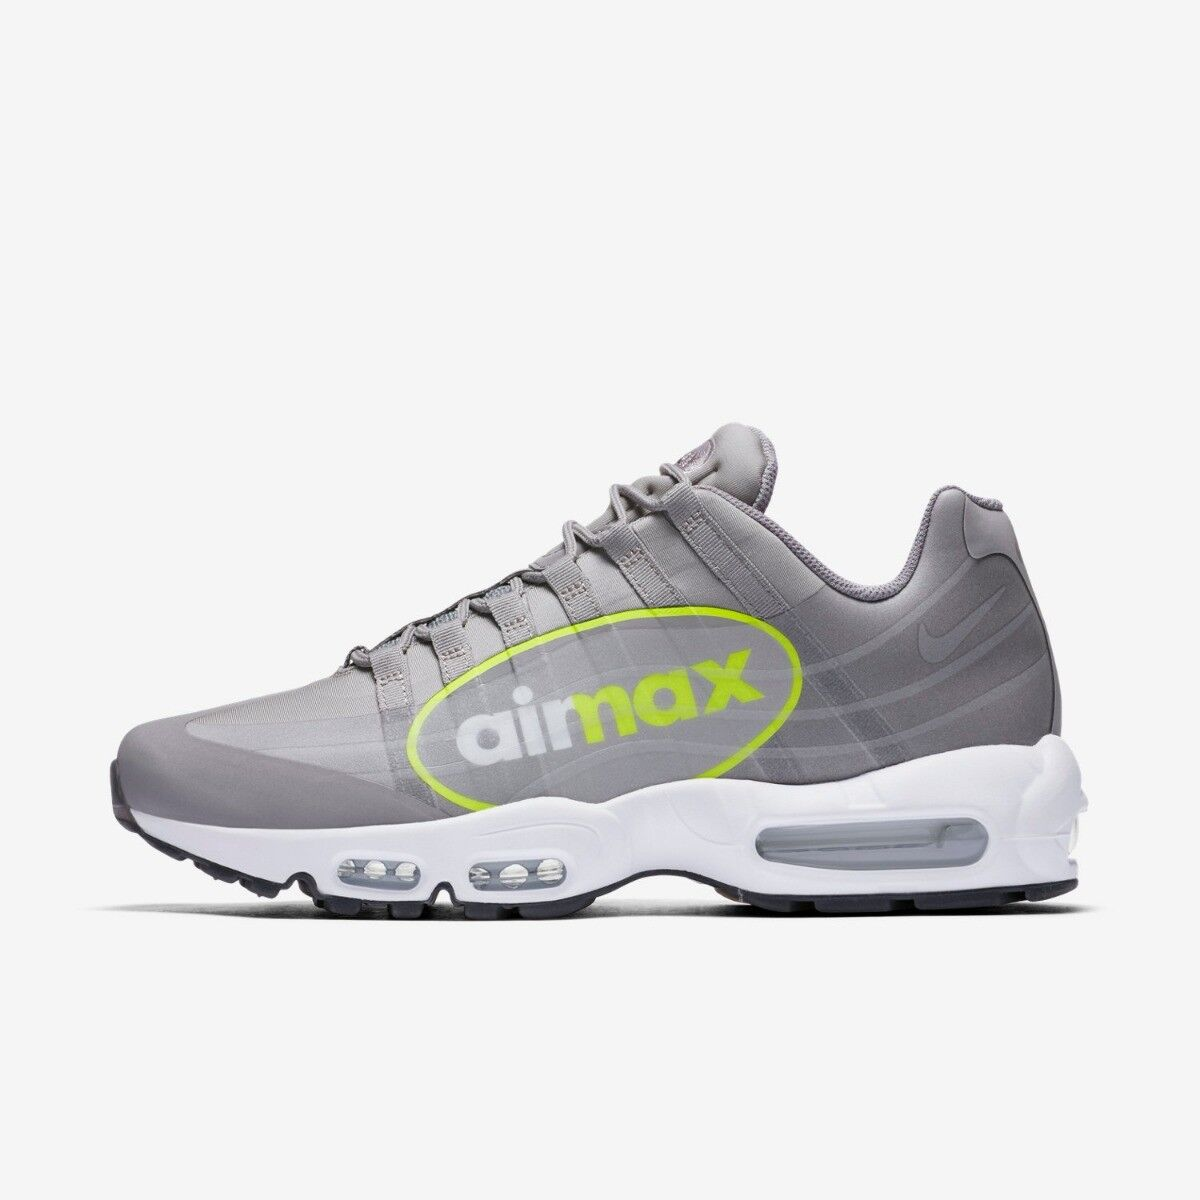 NIke Air Max 95 NS GPX Mens Running Trainer shoe Size 8 9 10 11 New Run